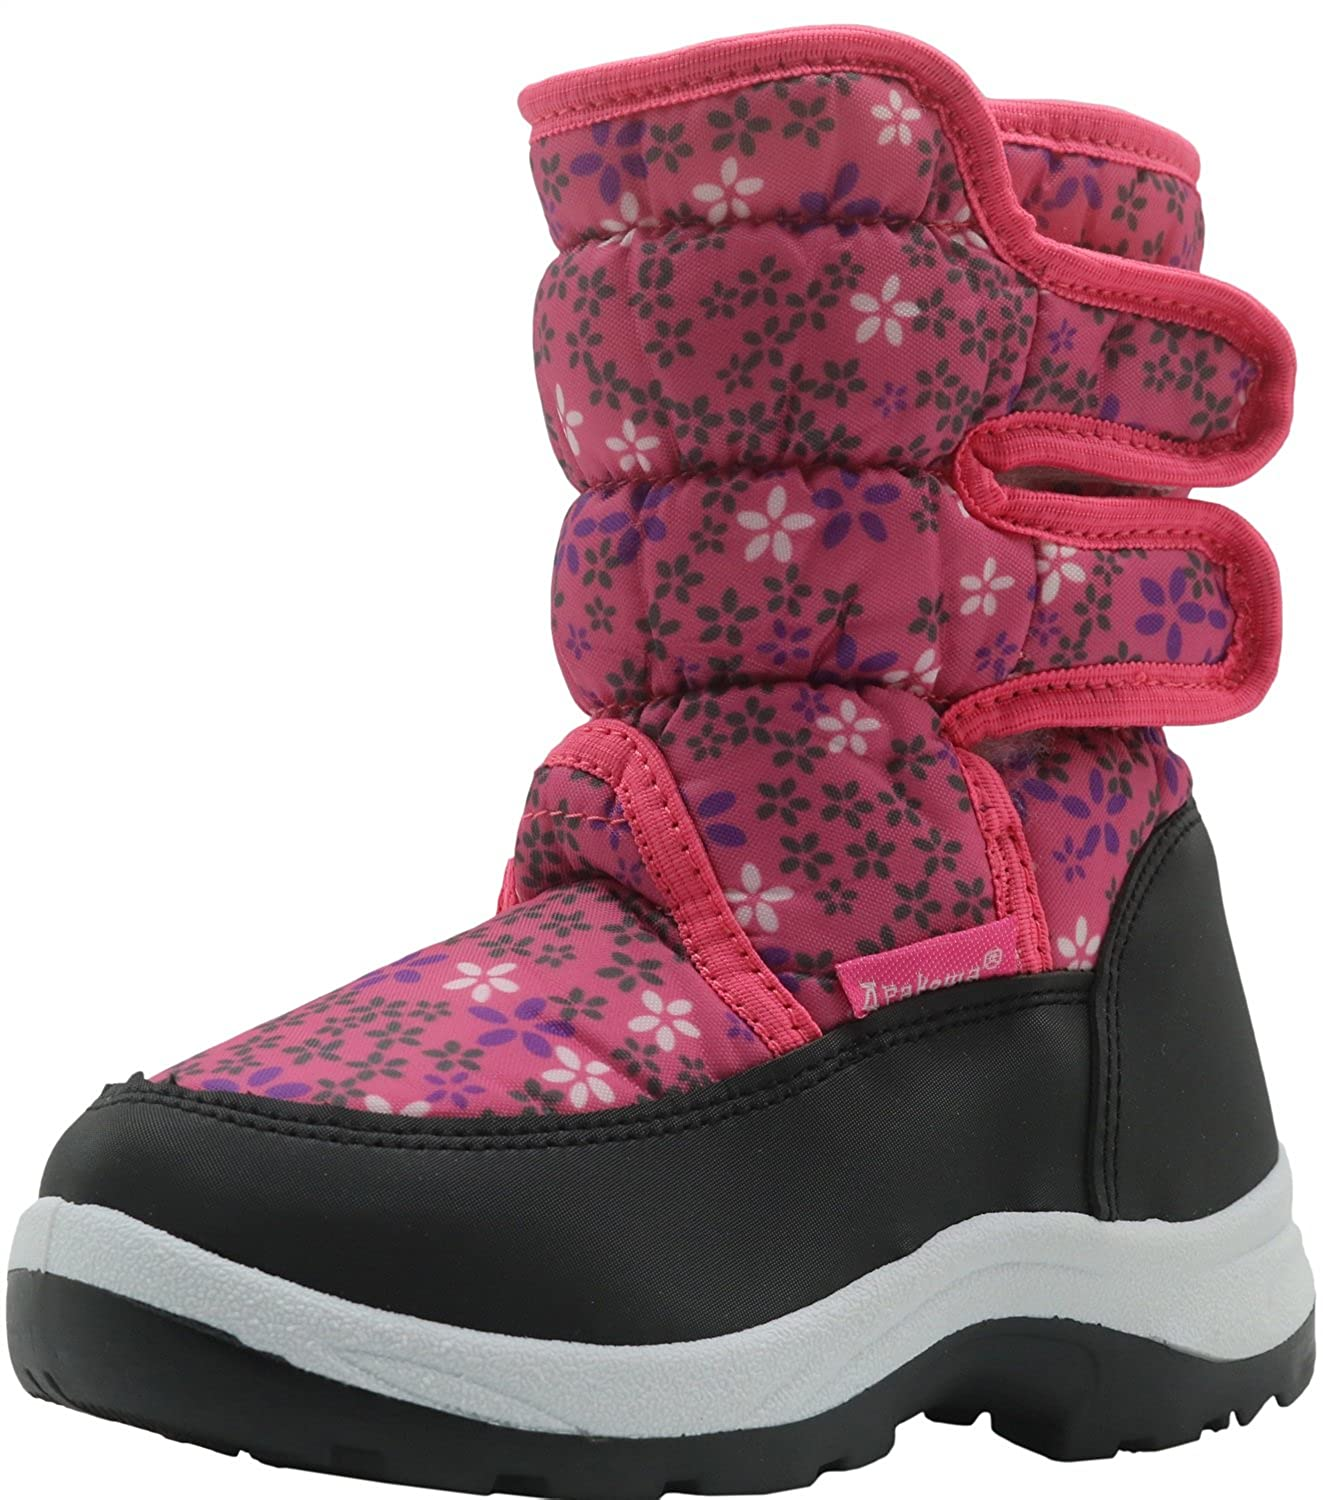 Apakowa Kid's Girls Cold Weather Snow Boots (Toddler/Little Kid) H3304-US